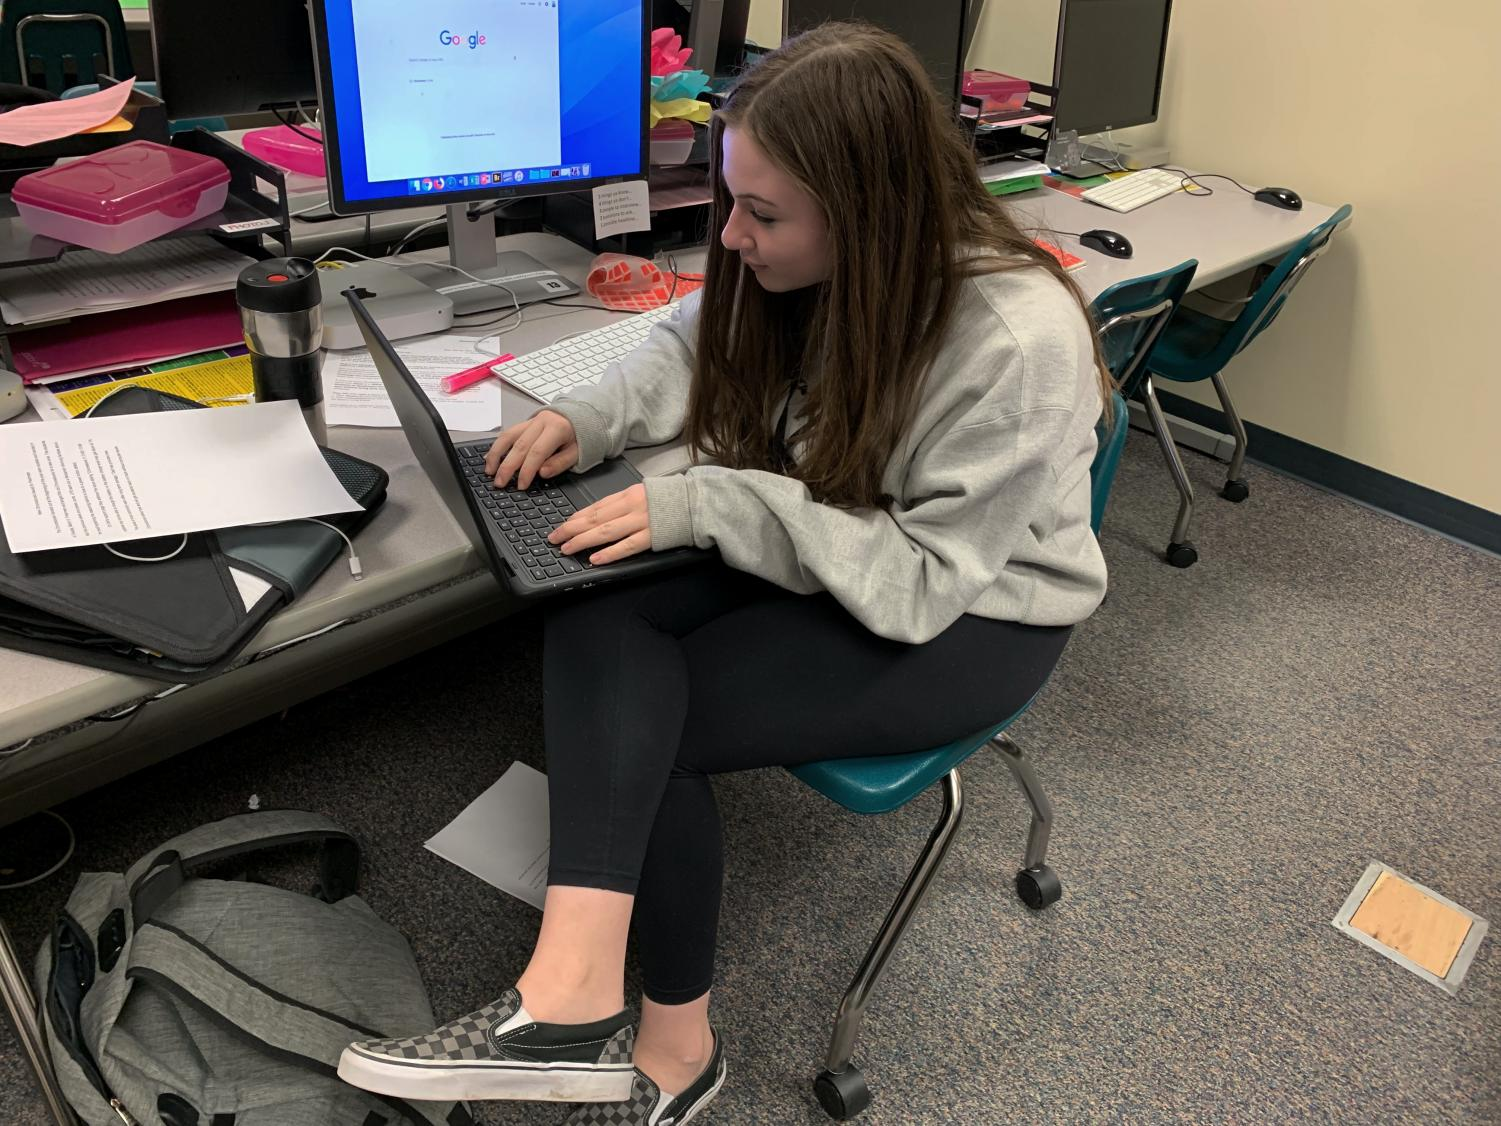 Freshmen received new Chromebooks this Tuesday. The exchange was due to a manufacturing defect.